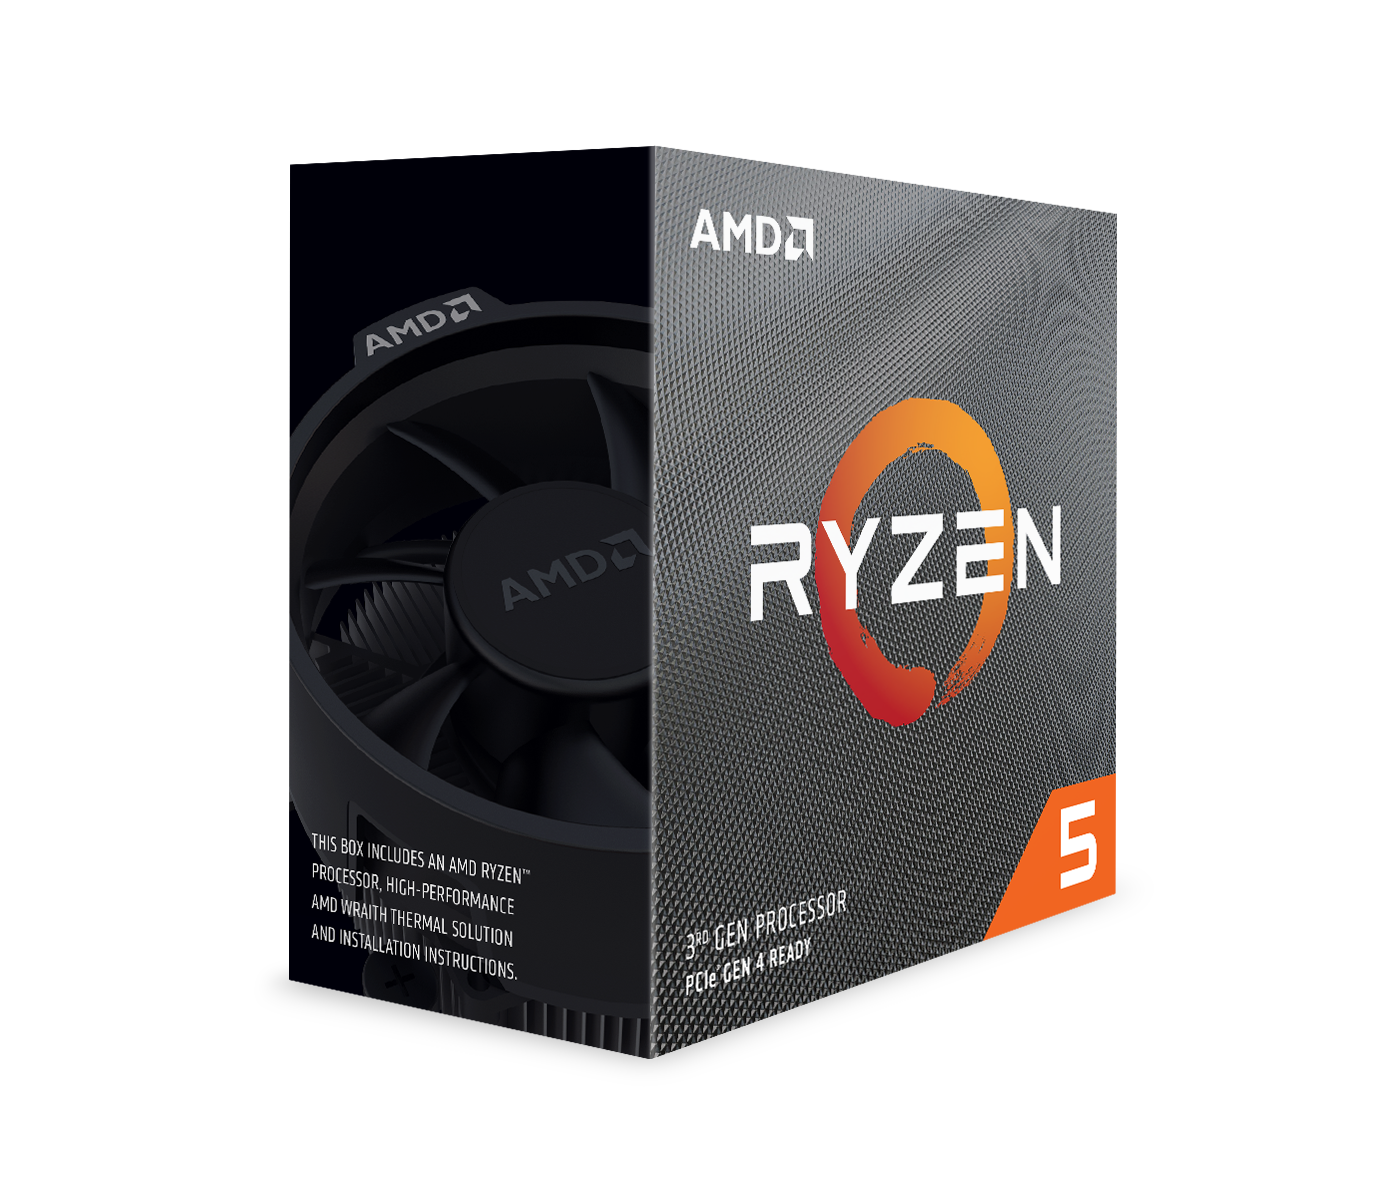 AMD Ryzen 5 3600 6-Core, 12-Thread 4.2 GHz AM4 Processor